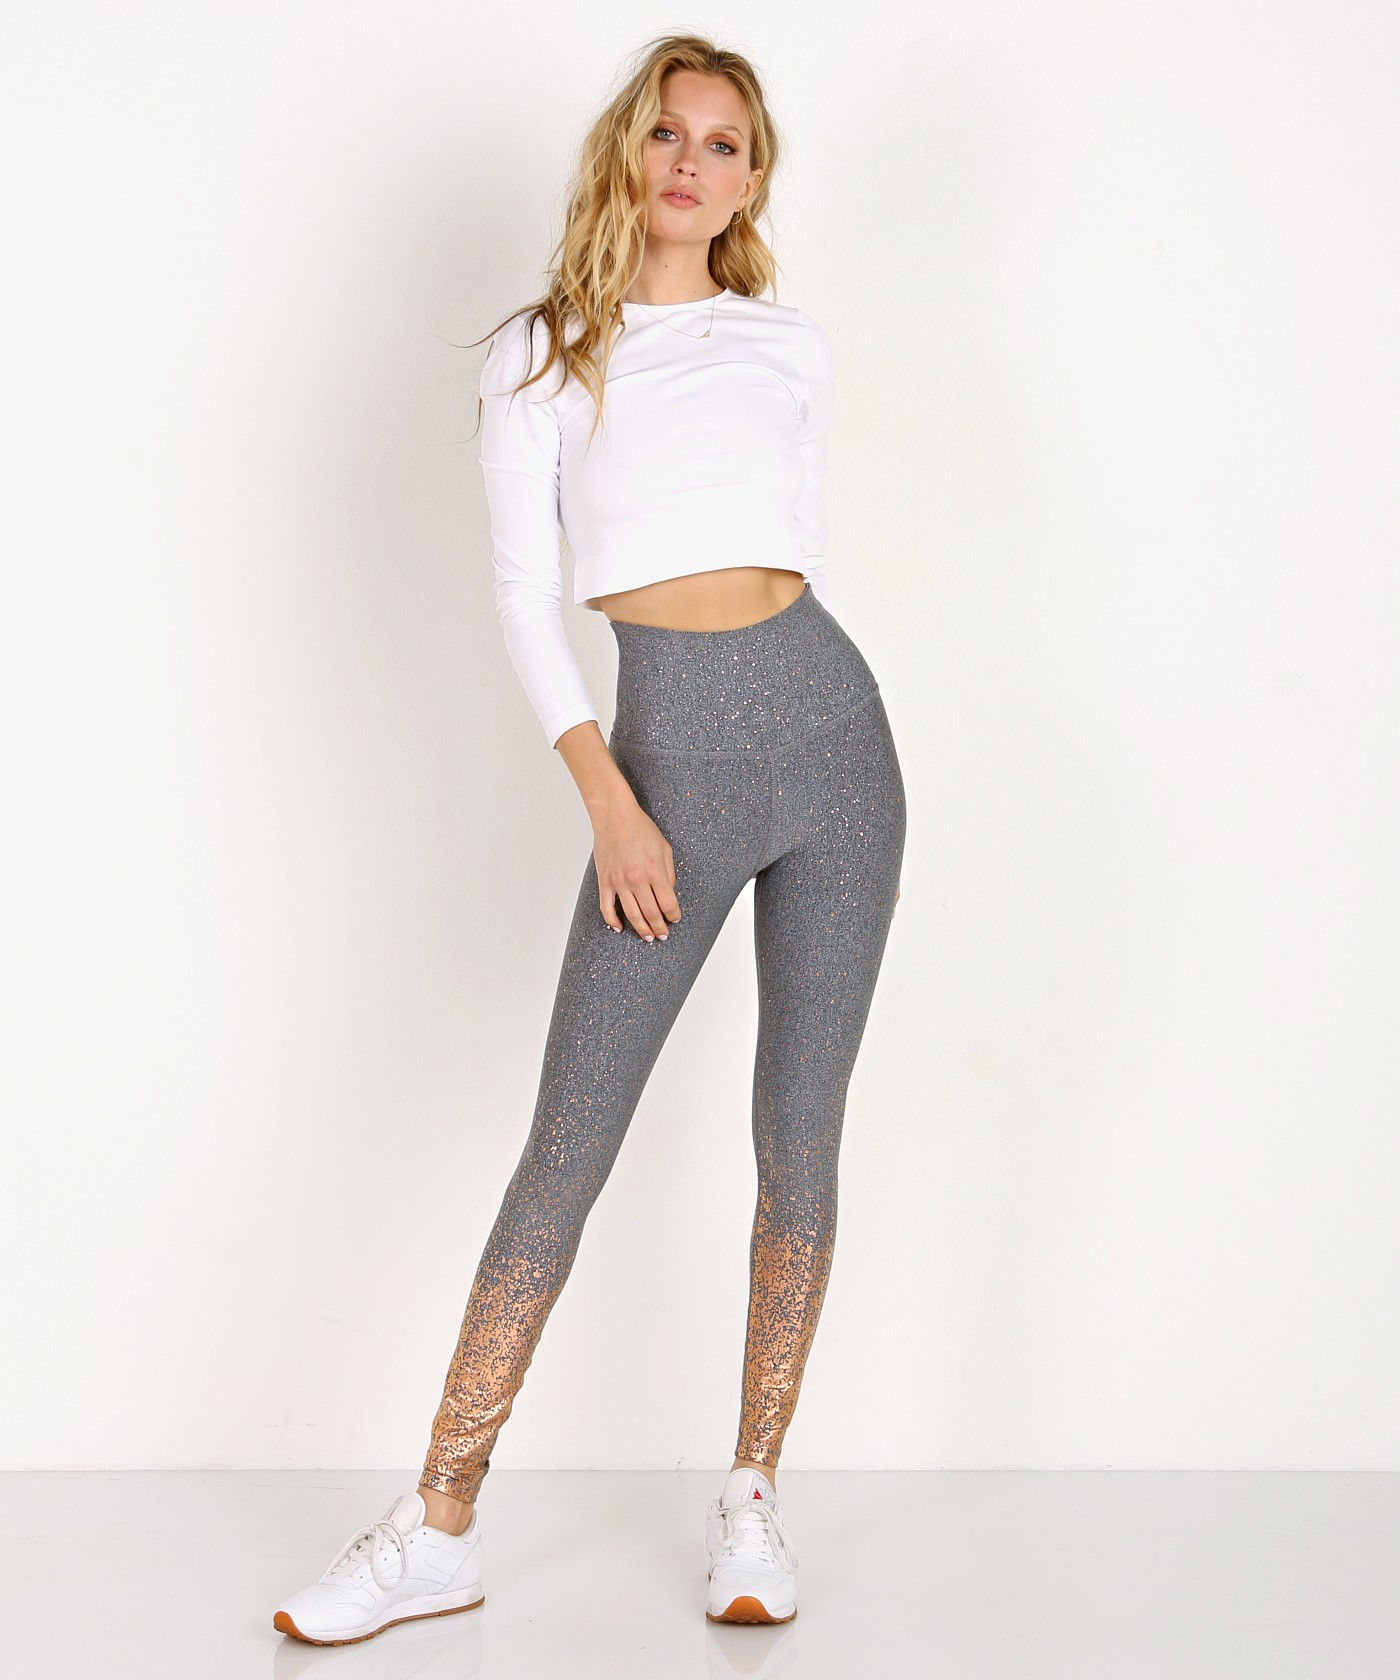 eabbd8e154 Beyond Yoga Alloy Ombre Sparkle High Waisted Midi Legging SF3243 - Free  Shipping at Largo Drive